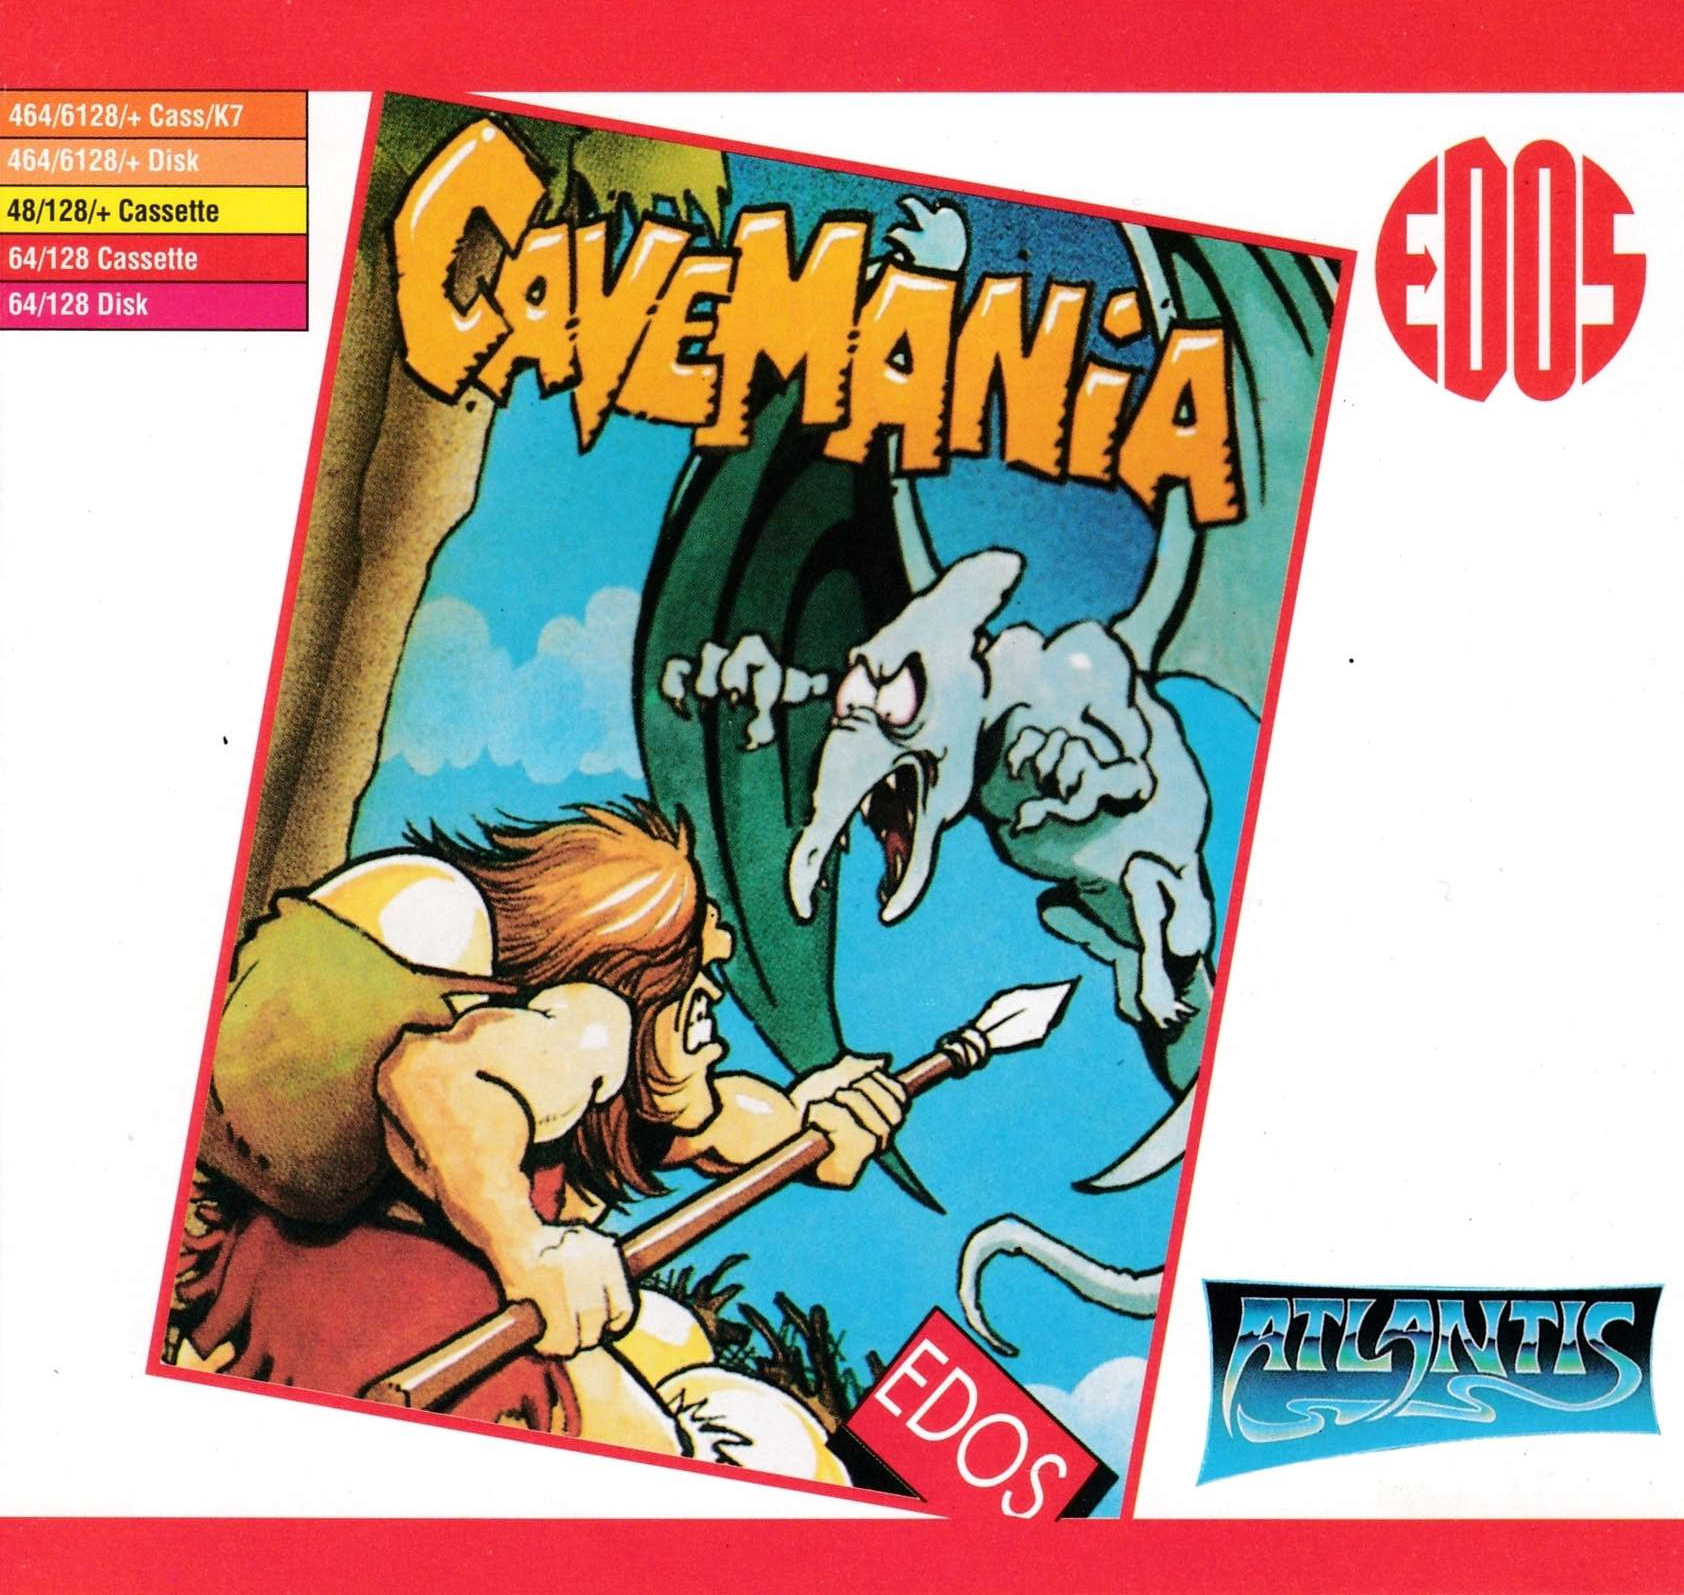 cover of the Amstrad CPC game Cavemania  by GameBase CPC